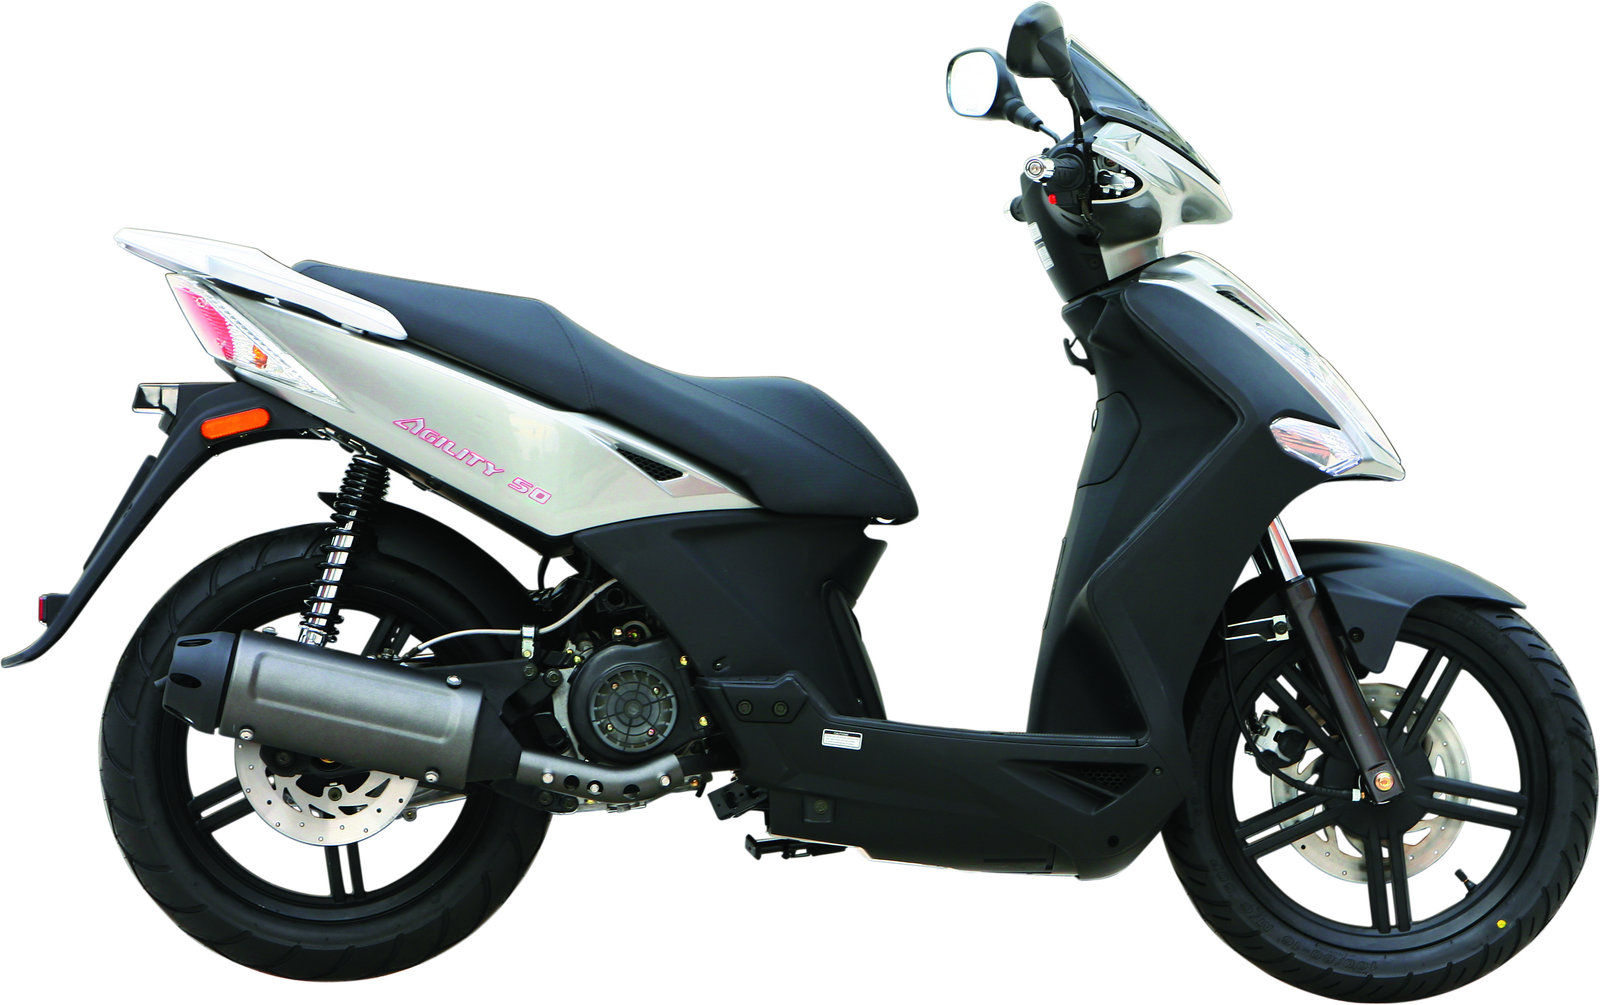 Kymco Heroism 150 1998 images #100848